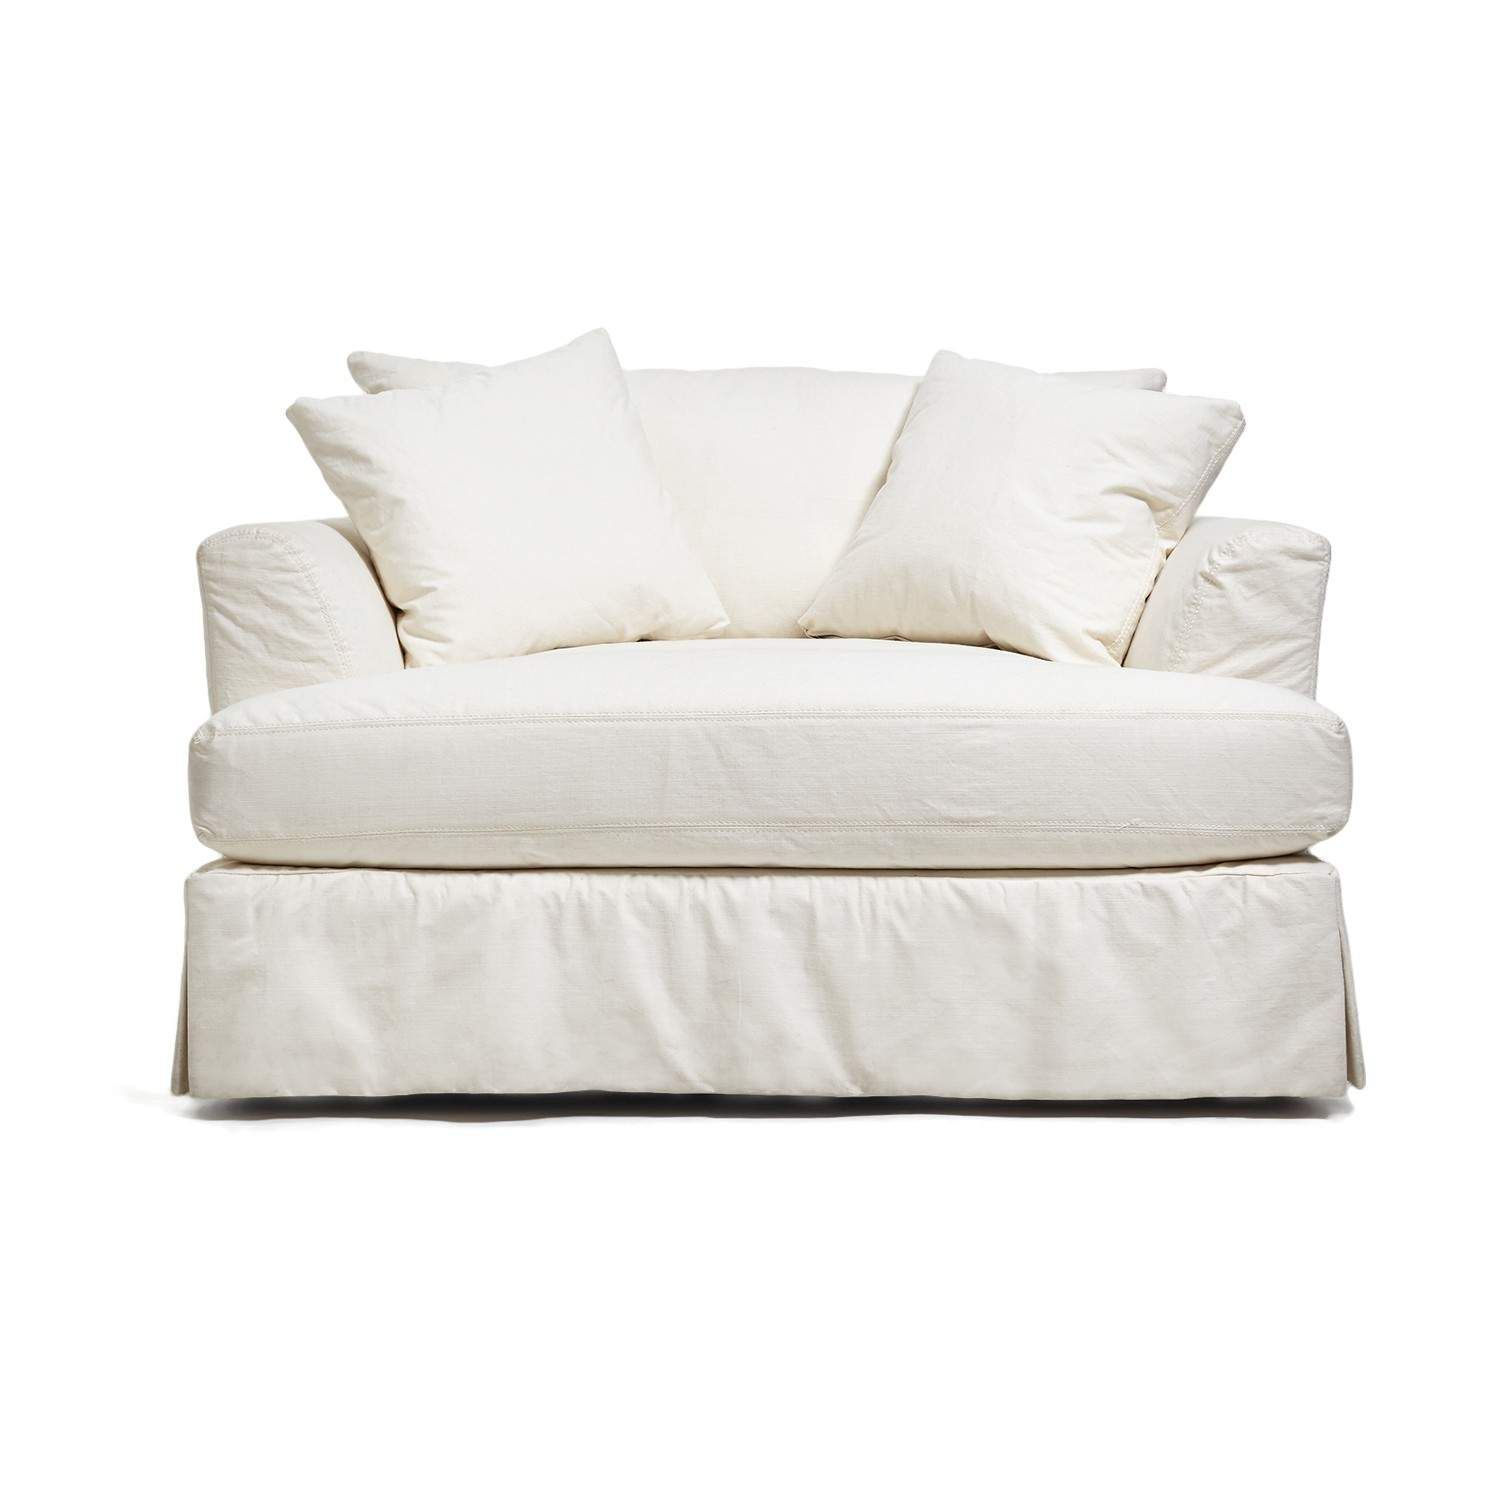 Exclusively At Abc The Martha S Vineyard Sofa Delivers Cozy Comfort In A Modern Clean Lined Design Handcraft